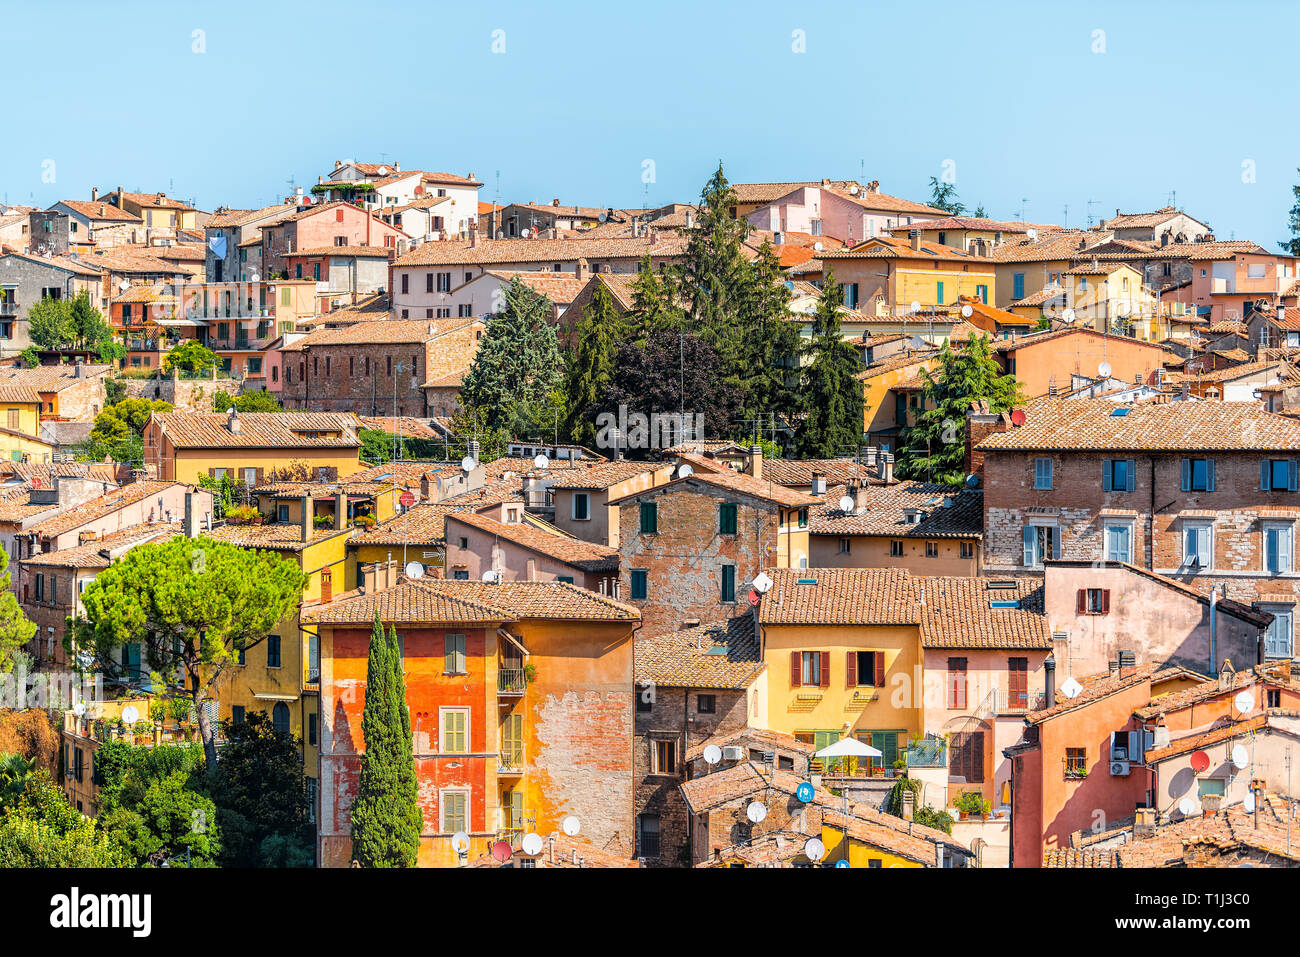 Perugia, Italy Umbria cityscape with historic old medieval Etruscan buildings and rooftops of town village yellow orange colors in summer satellite di - Stock Image